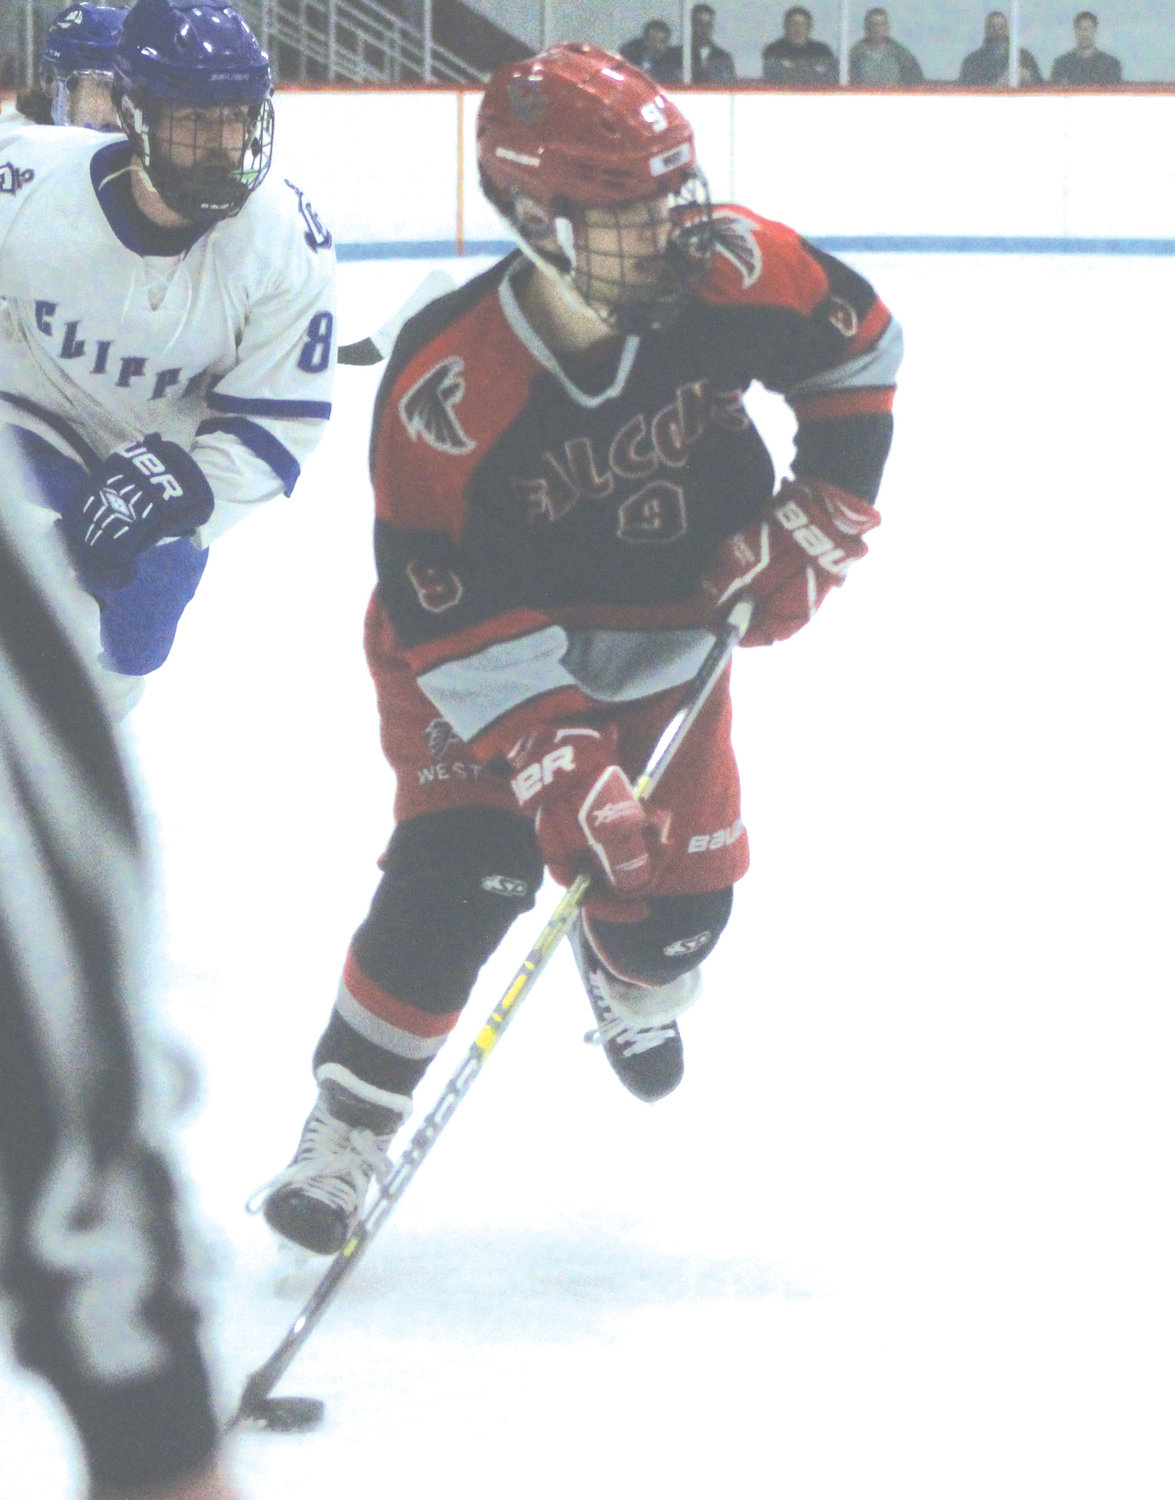 UP THE ICE: Cranston West's Dylan Demers.